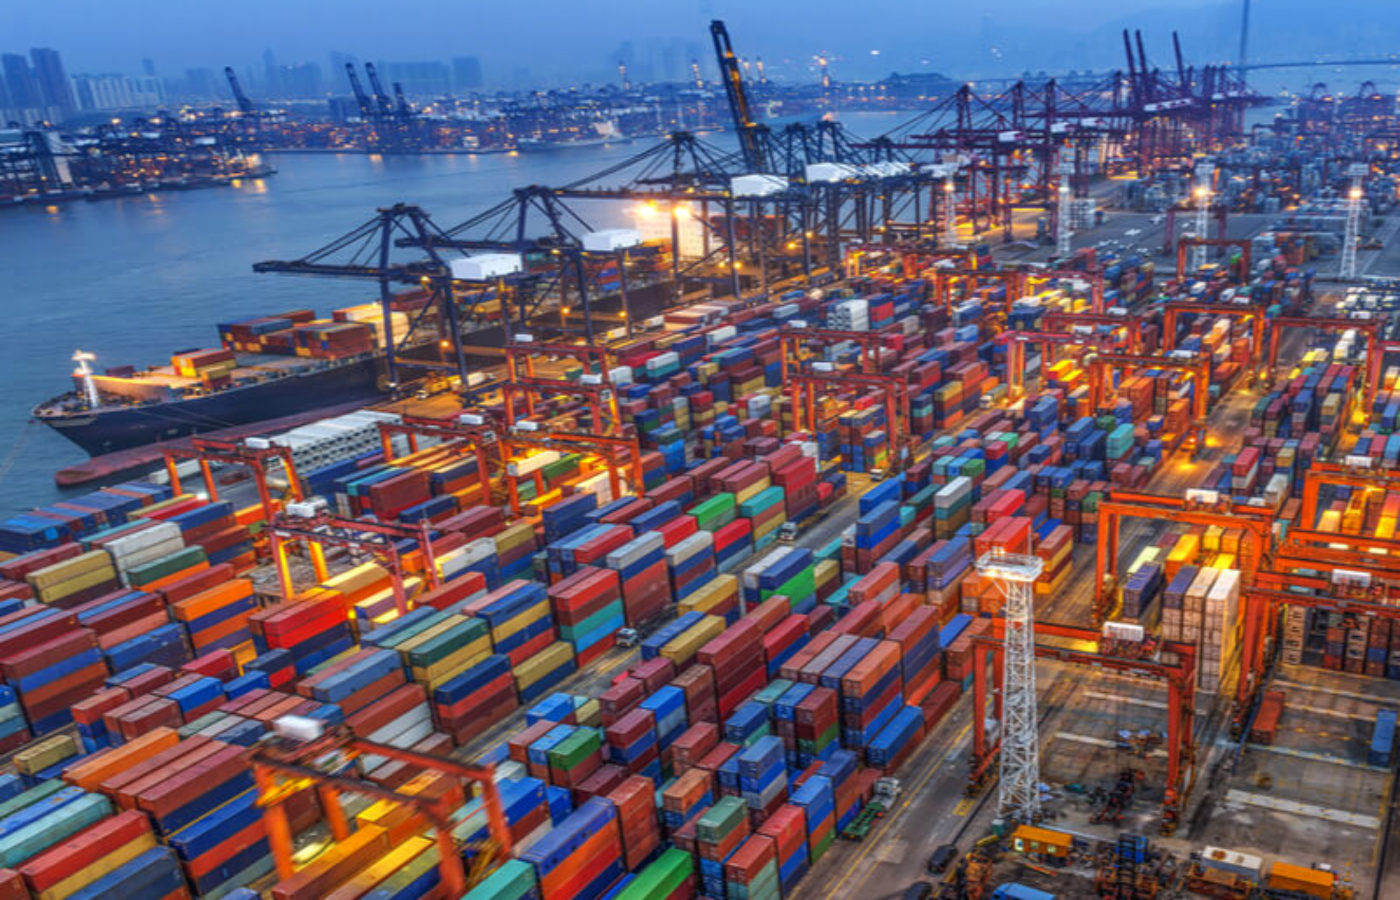 Why Is the Sea Freight Industry Struggling to Keep up With the Current Demand?